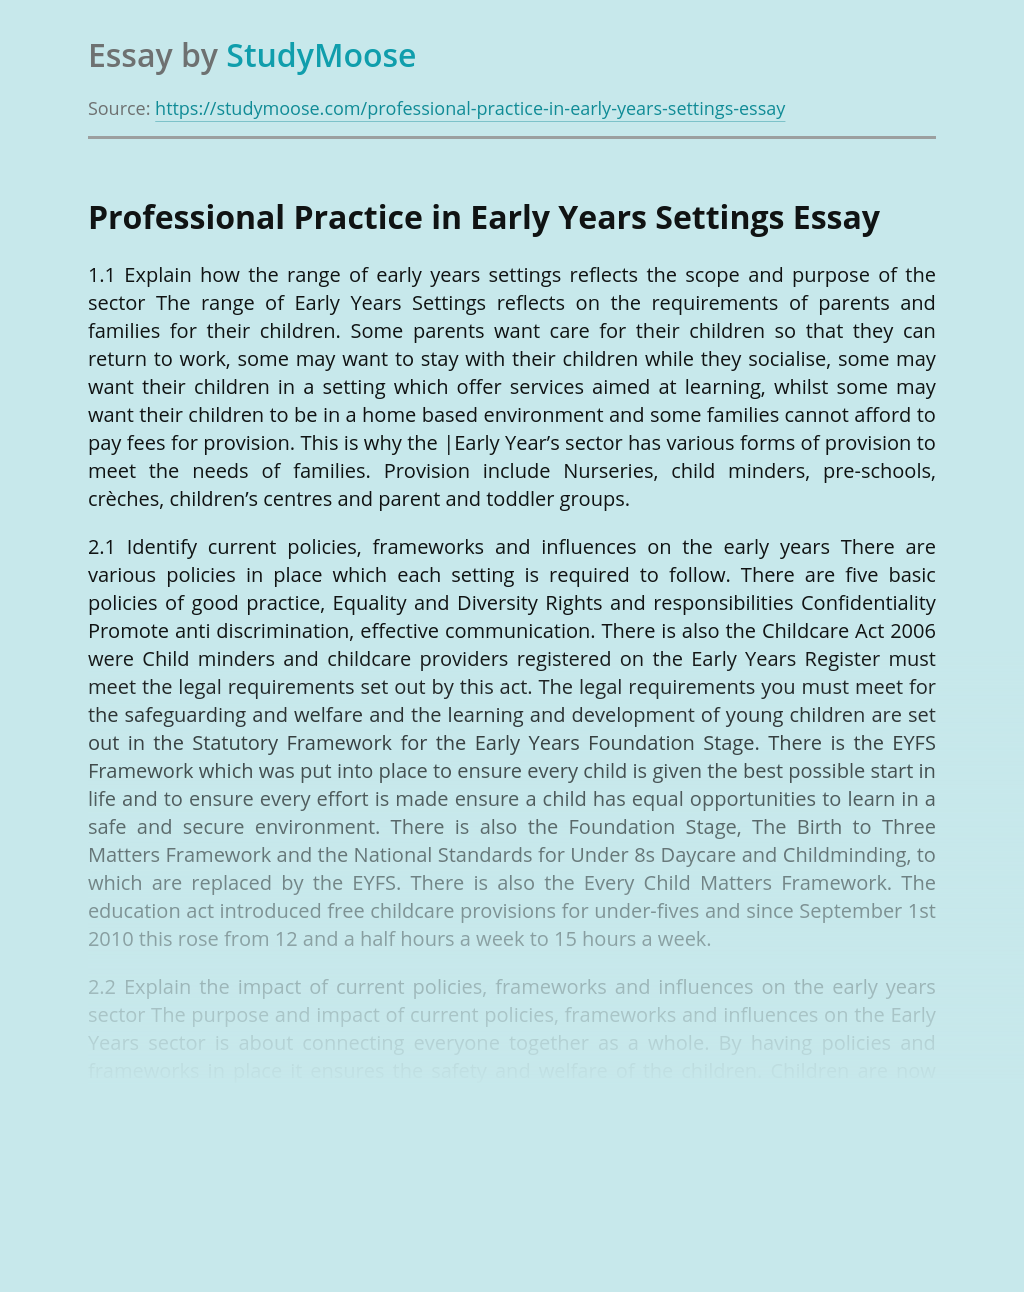 Professional Practice in Early Years Settings